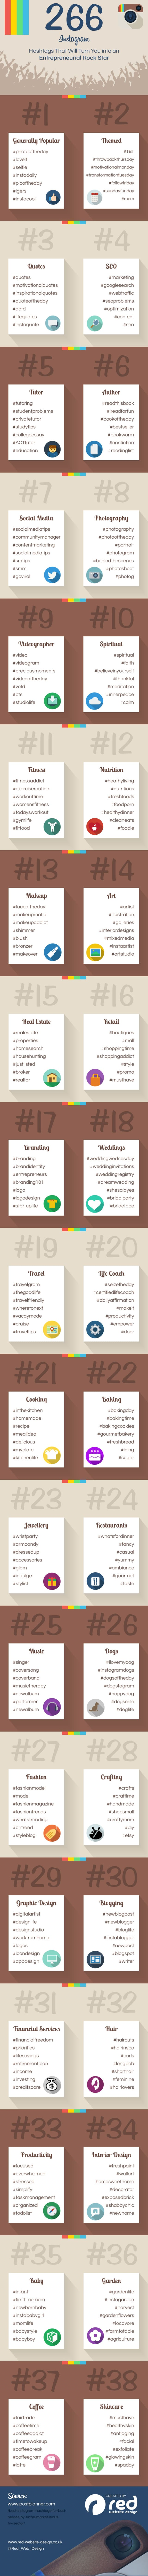 266 Instagram Hashtags For Entrepreneurial Rock Stars [Infographic]